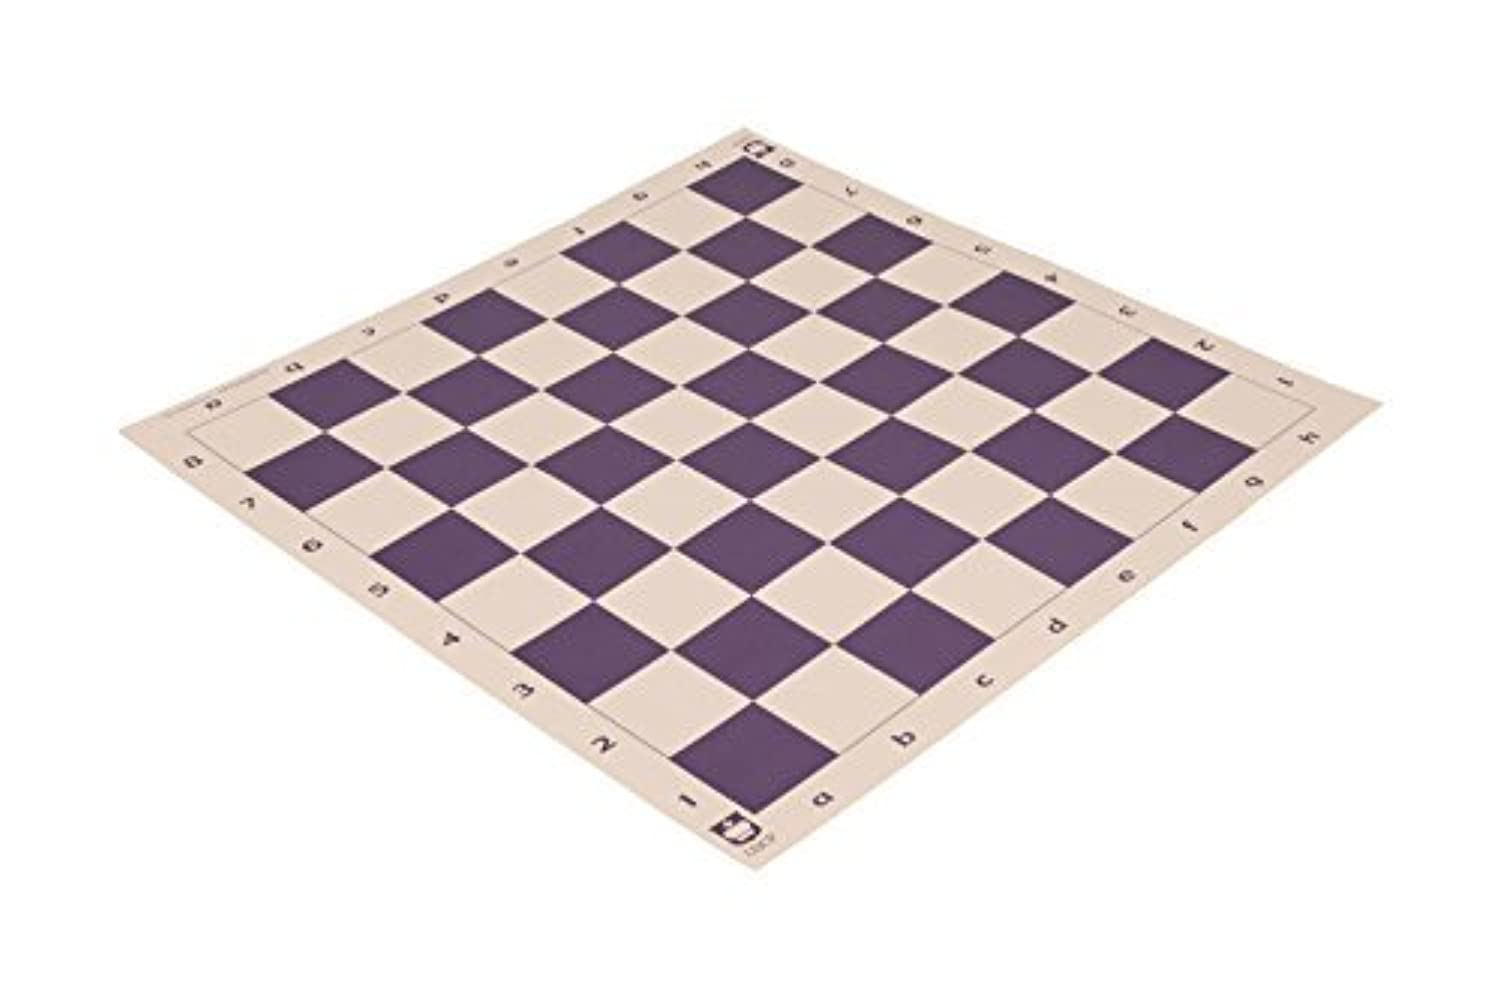 Standard Paper Tournament Chess Board - 2.25 Squares - Violet & Buff by